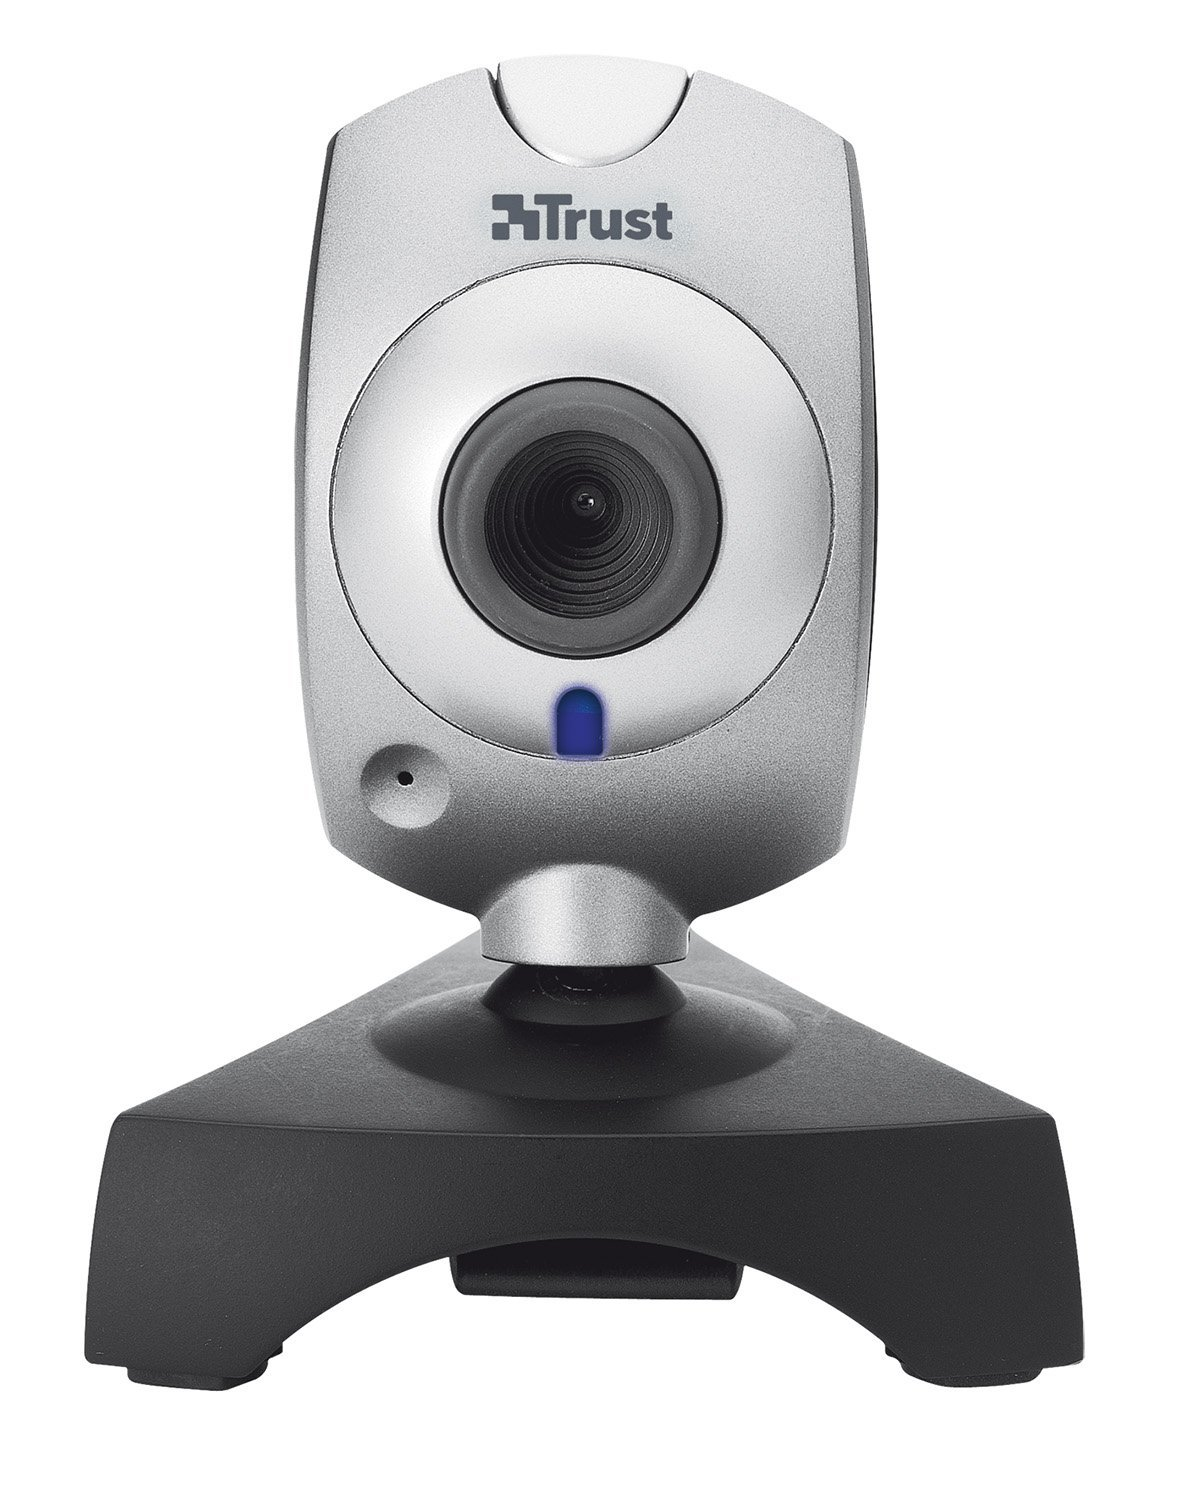 Webcams Have Become Impossible To Find, And Prices Are Skyrocketing